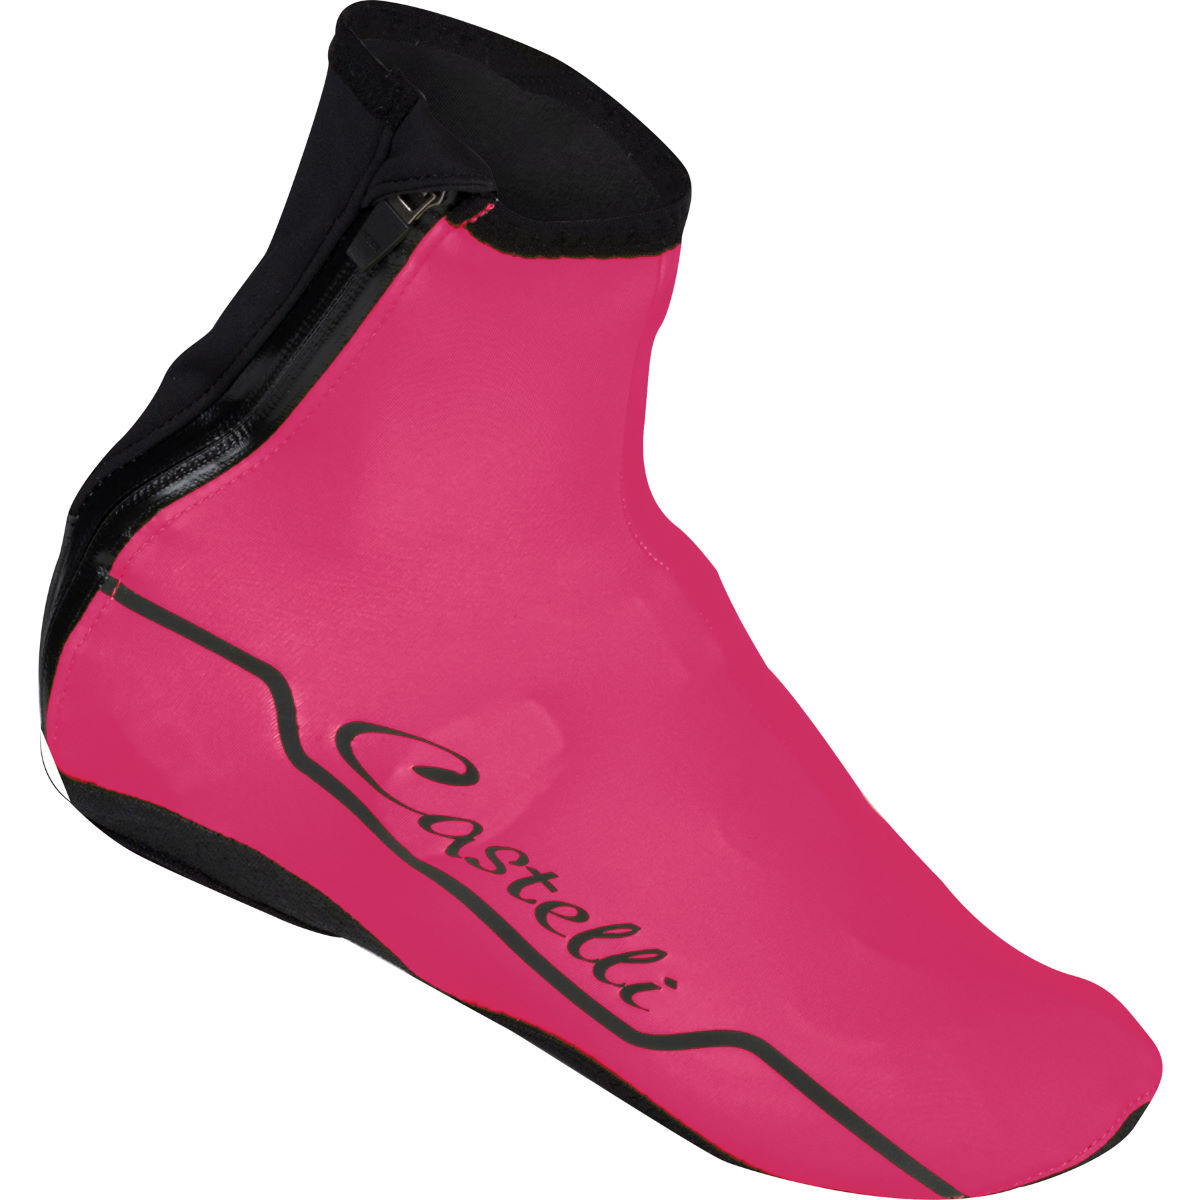 Couvre-chaussures Femme Castelli Troppo - S Raspberry/Black